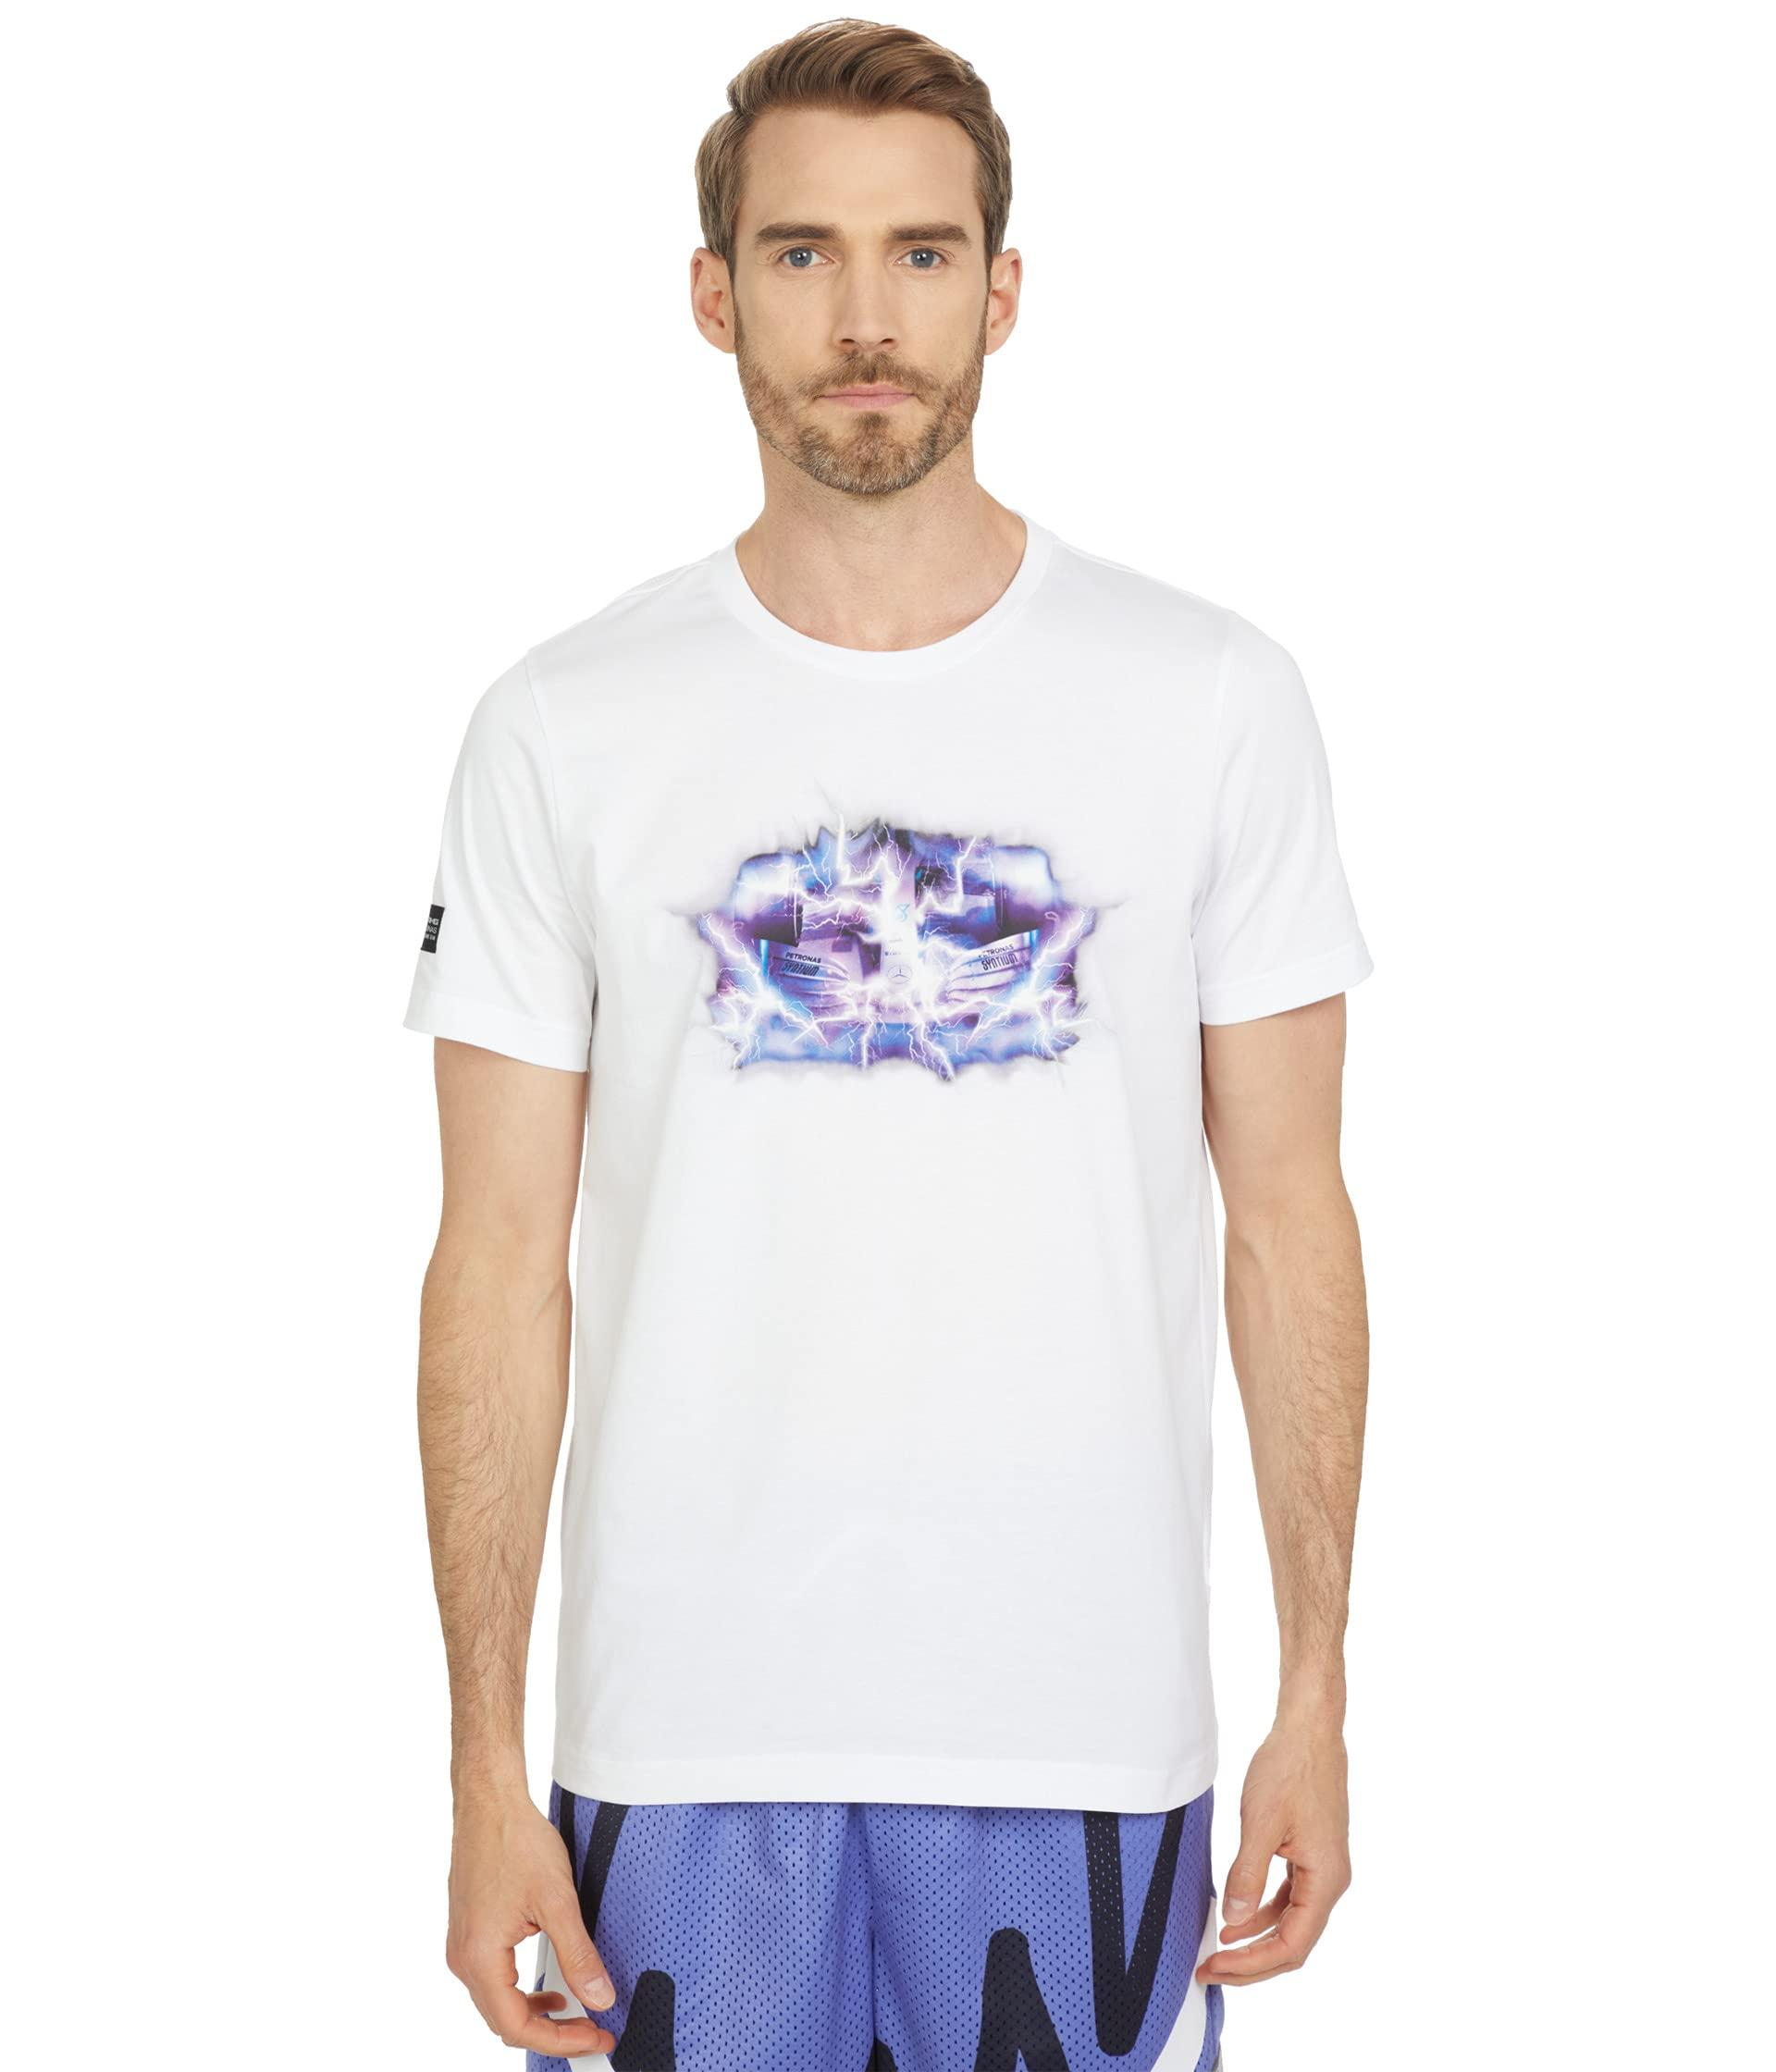 PUMA Cotton Mapf1 Street Vintage Tee in White for Men - Lyst